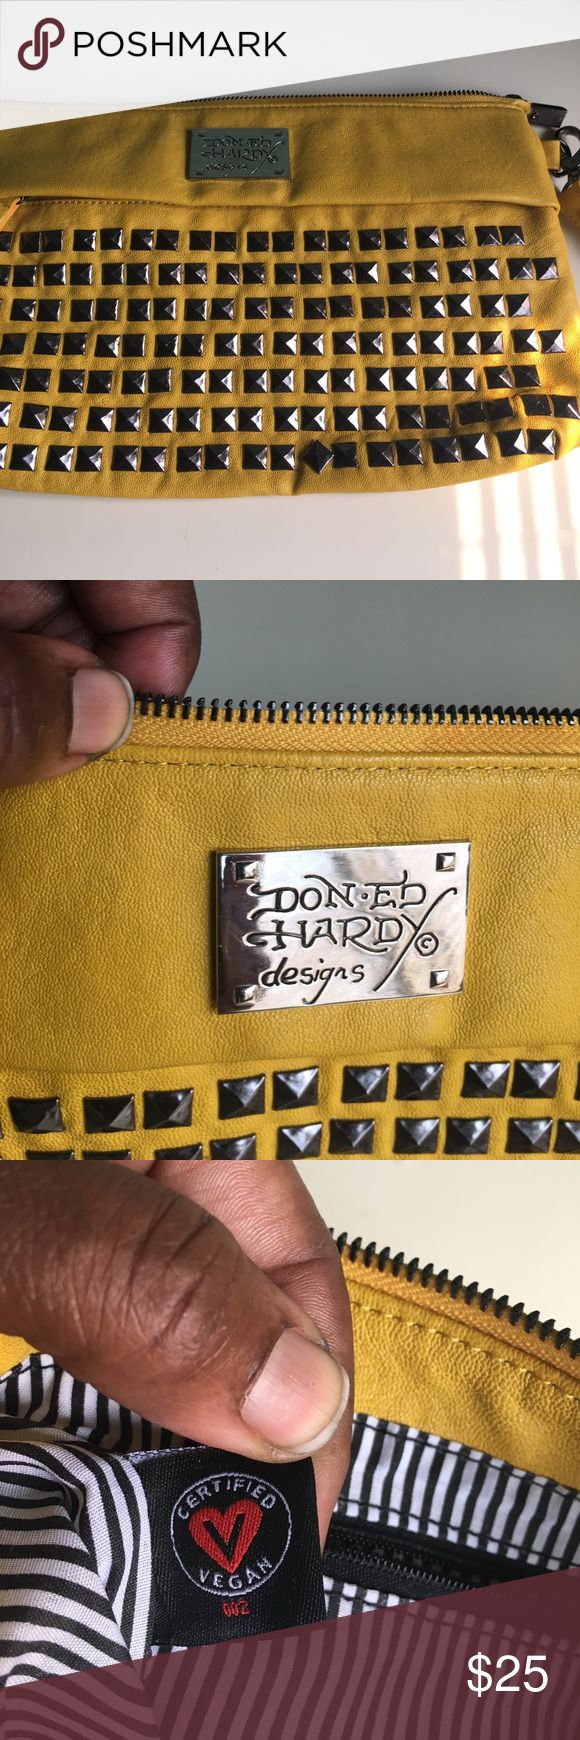 Don Ed Hardy yellow clutch w/wrist strap Ed Hardy, certified Vegan leather, yellow clutch with pewter square pewter studs.  No tears, stains or rips, one mark note Pic #7 in excellent condition in and out!  The mustard color is very stylish and eye catching. Ed Hardy Bags Clutches & Wristlets